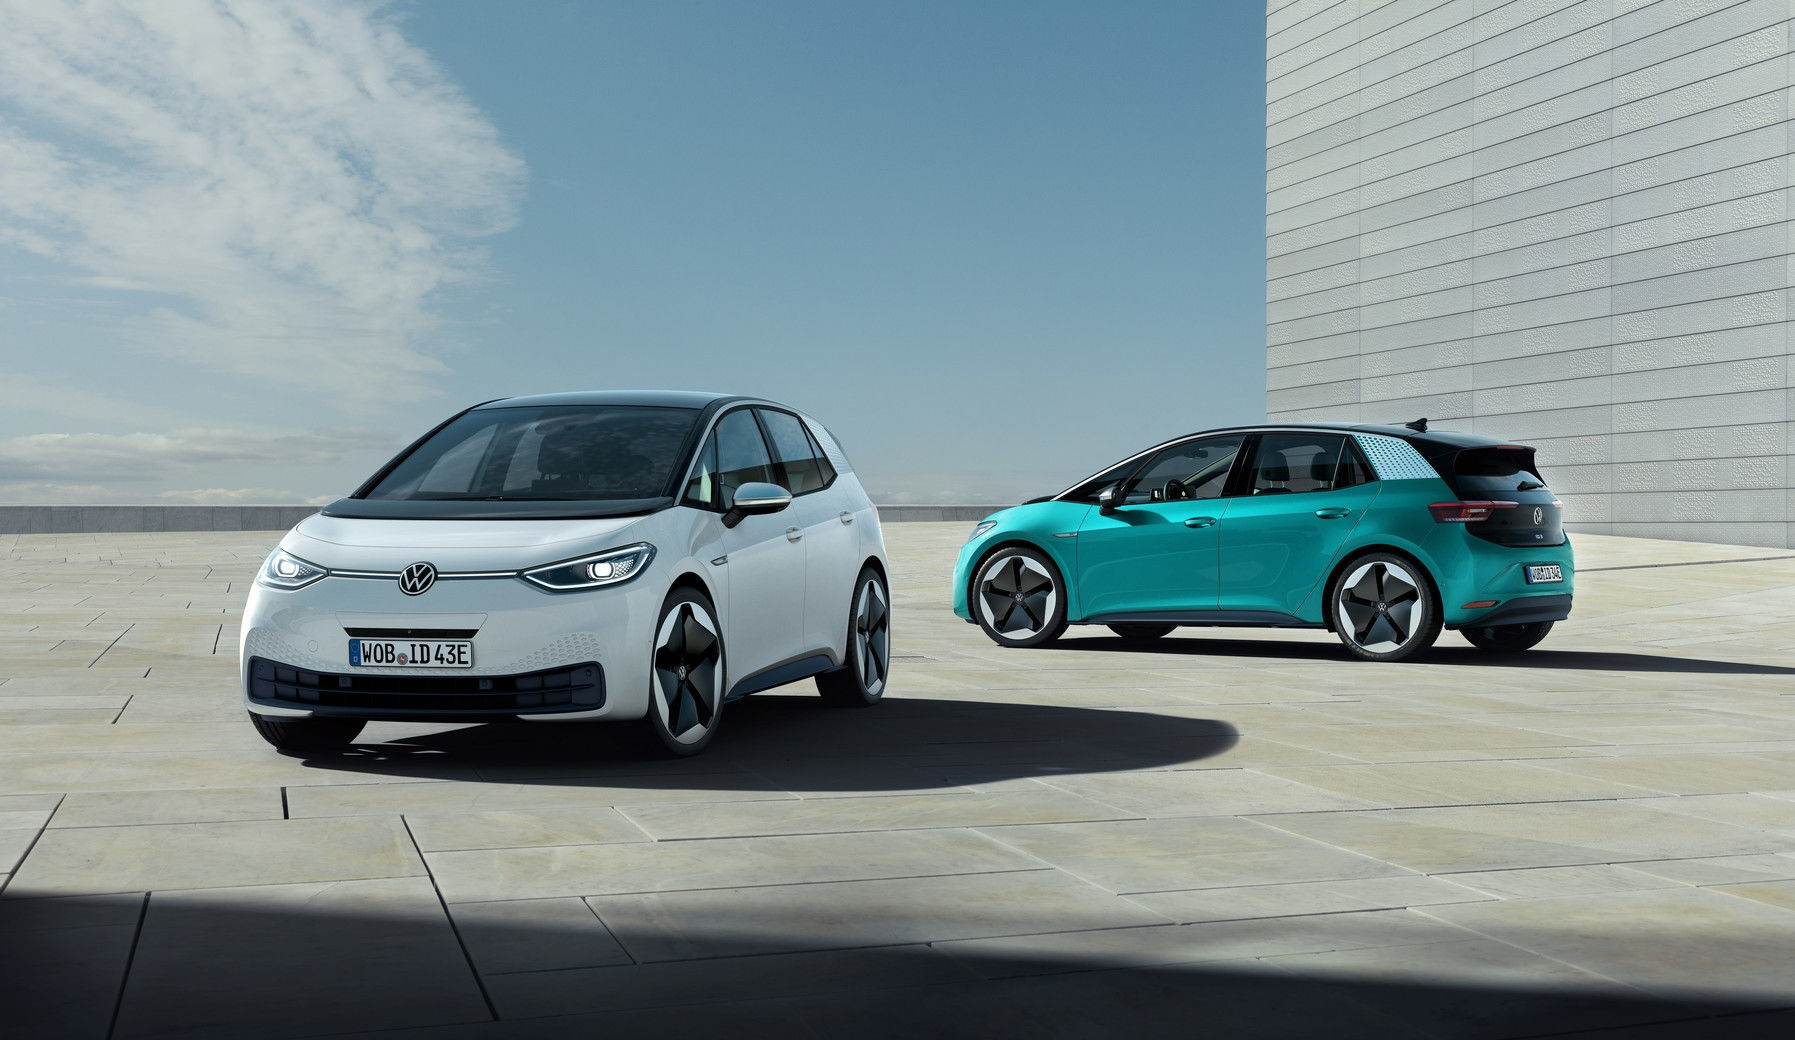 Volkswagen sets new EV production target of 1.5 million by 2025 | DeviceDaily.com